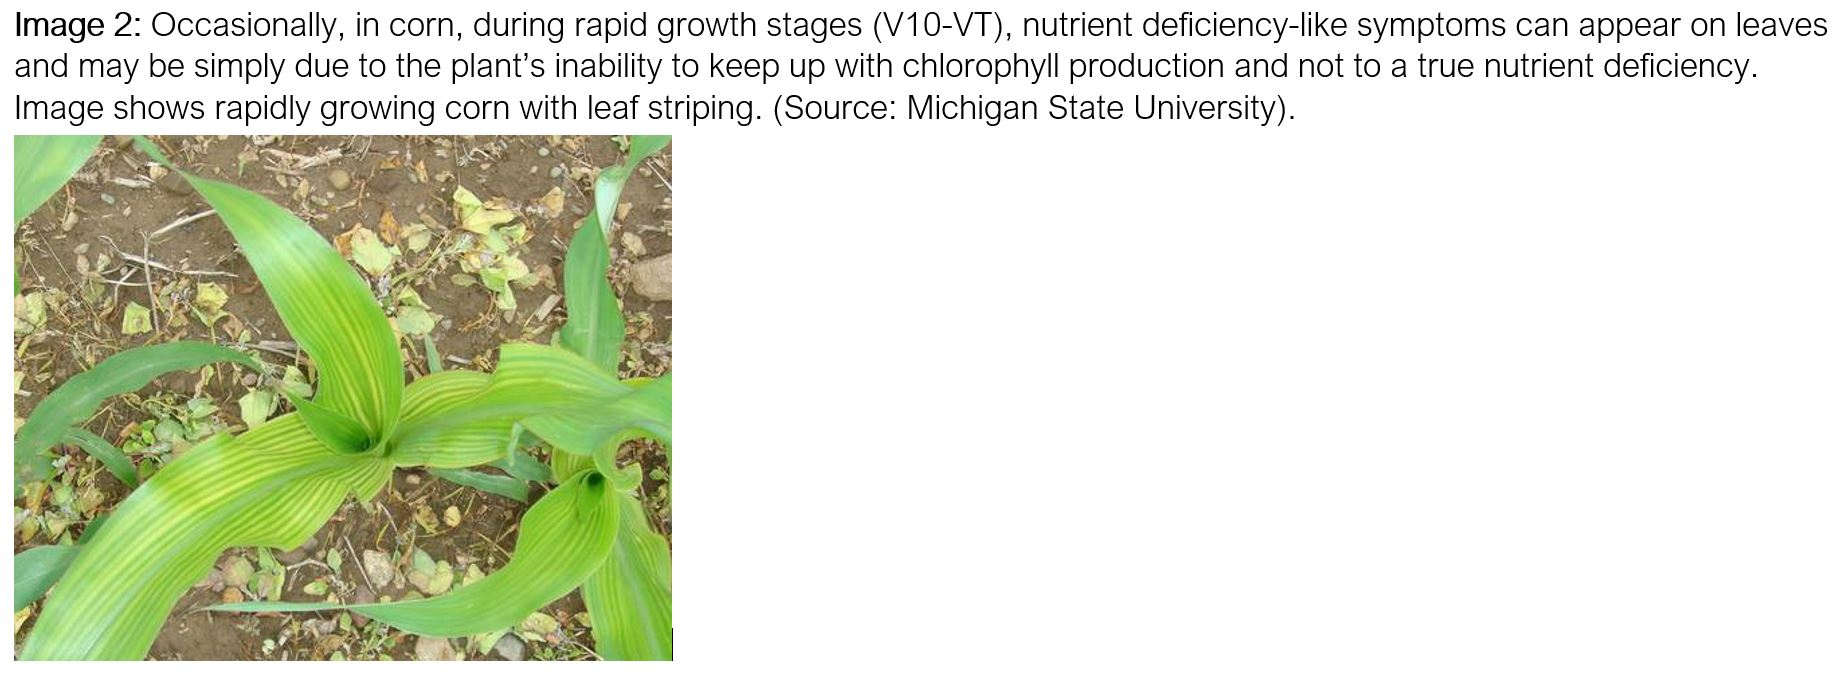 Rapid_corn_growth_leaf_striping_CAPTION-1.jpg